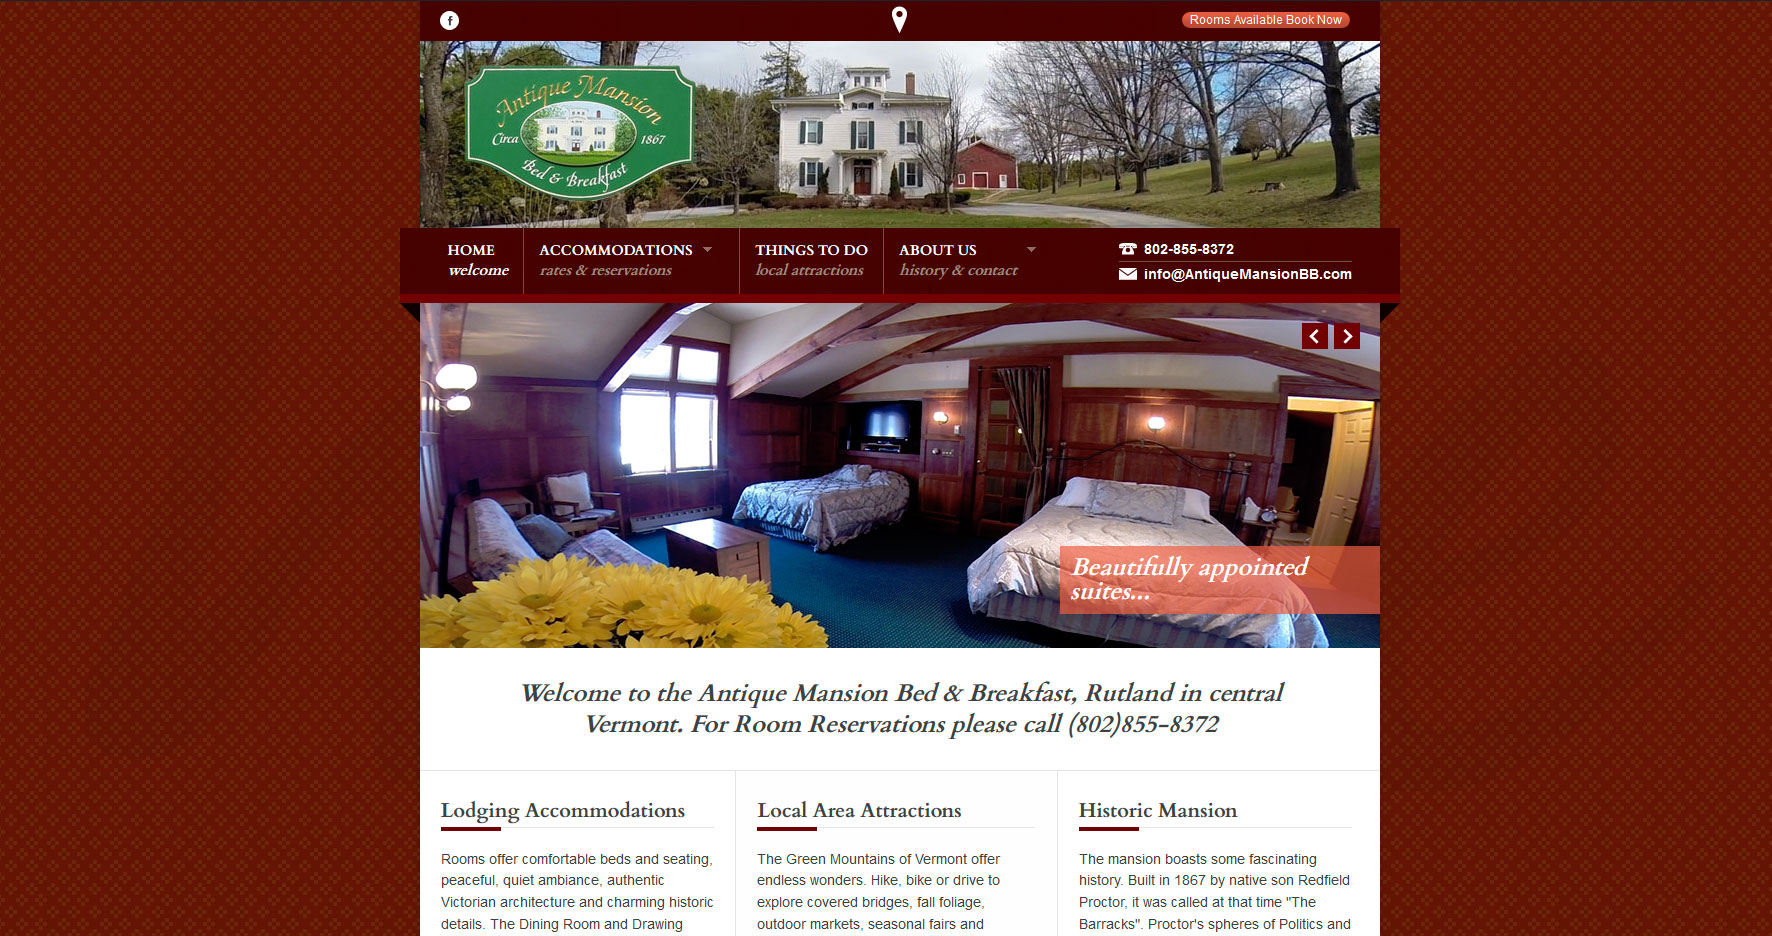 Antique-Mansion-Bed-and-Breakfast-website-design